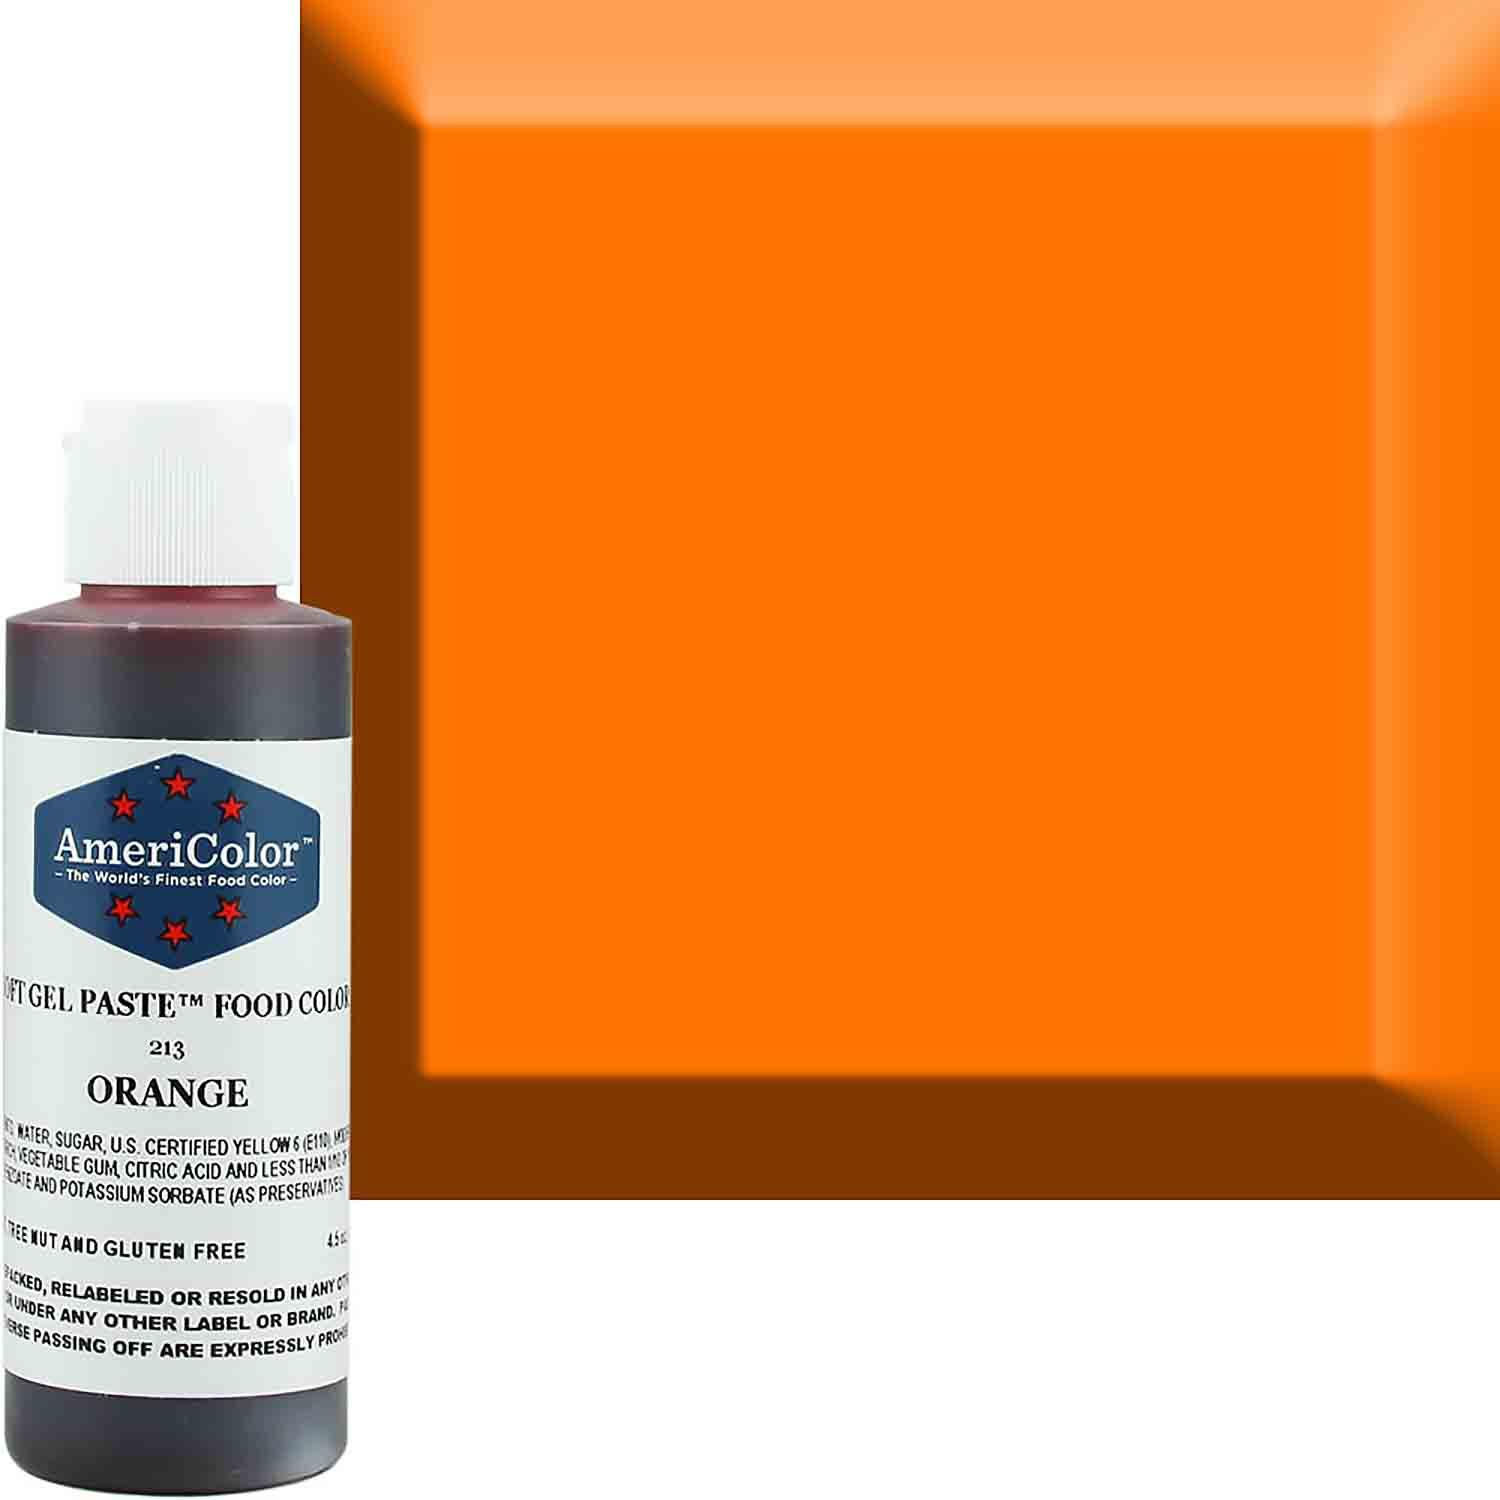 Orange Americolor® Soft Gel Paste Food Color (Old # 41-7813)